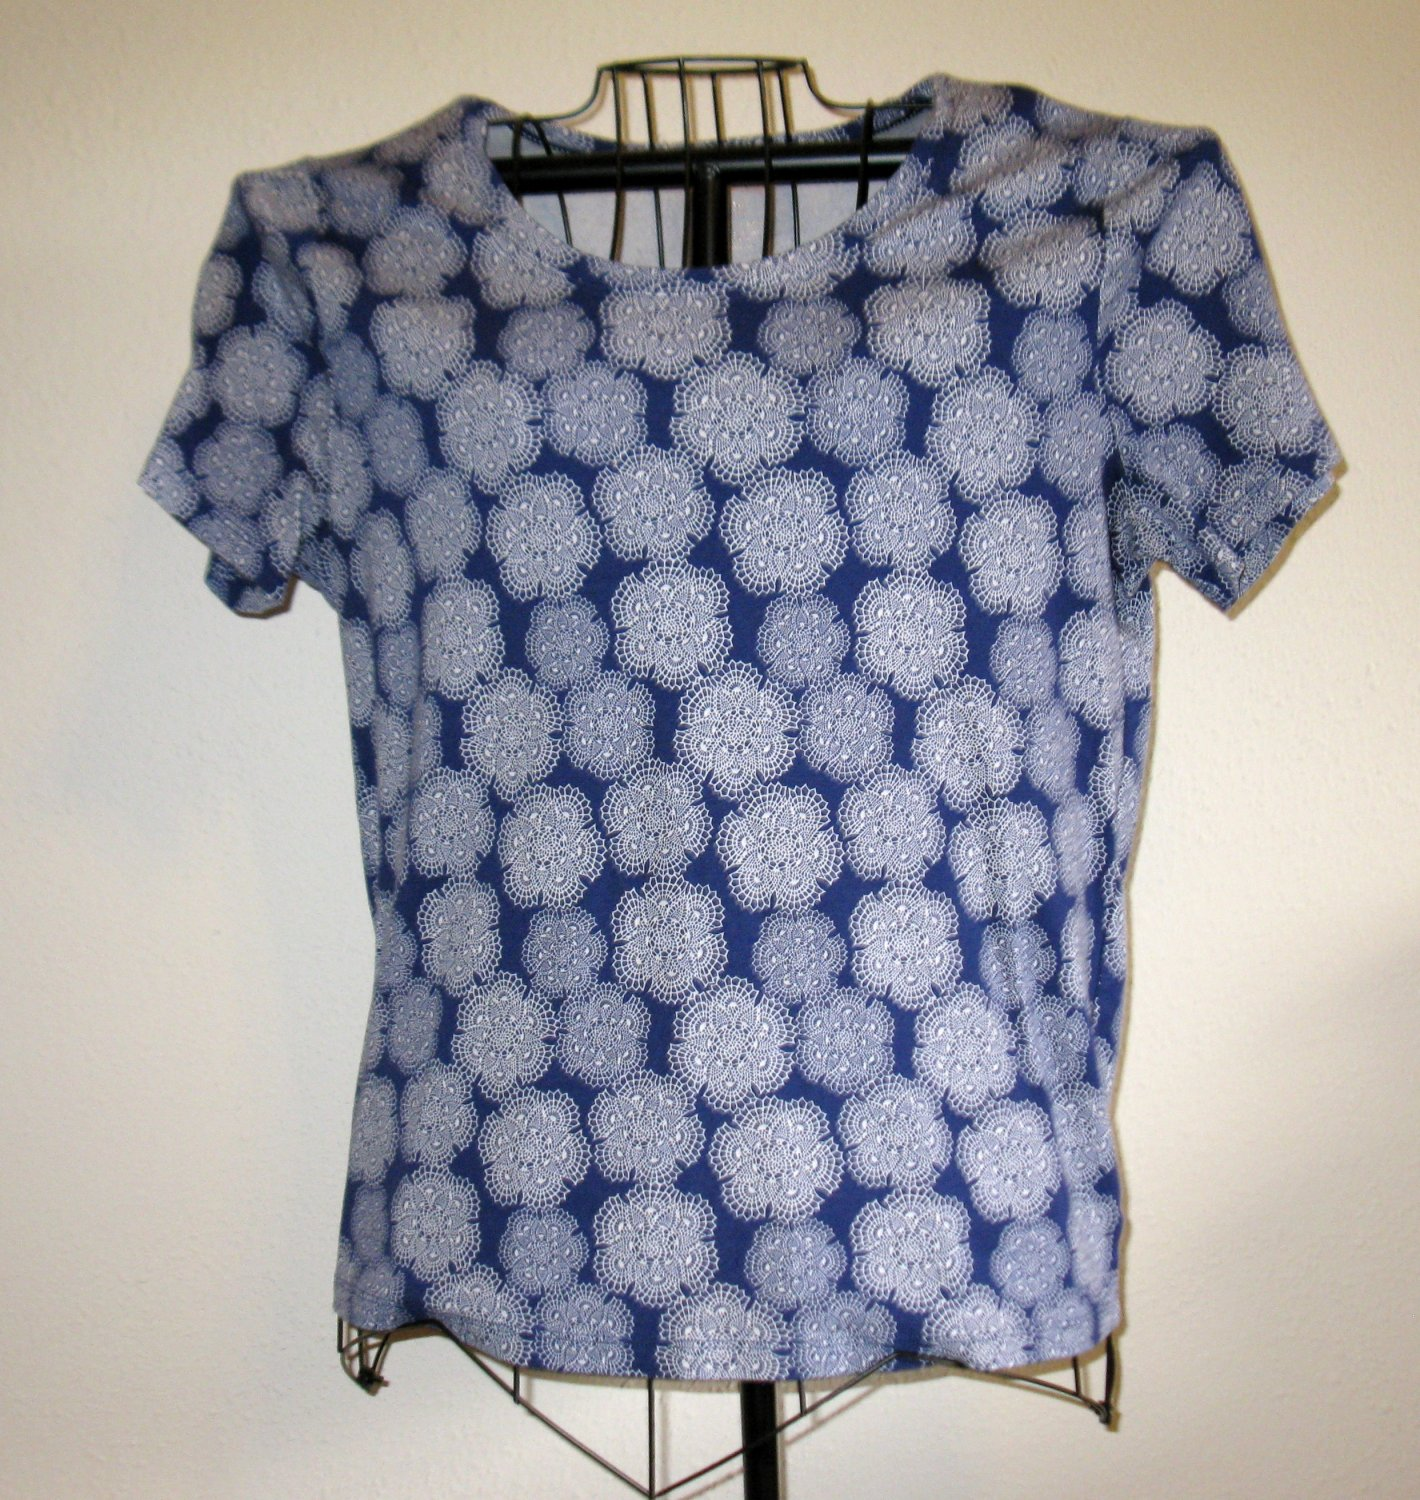 Navy Blue & White Design Top Shirt Blouse by White Stag Size XL (16-18) #D274